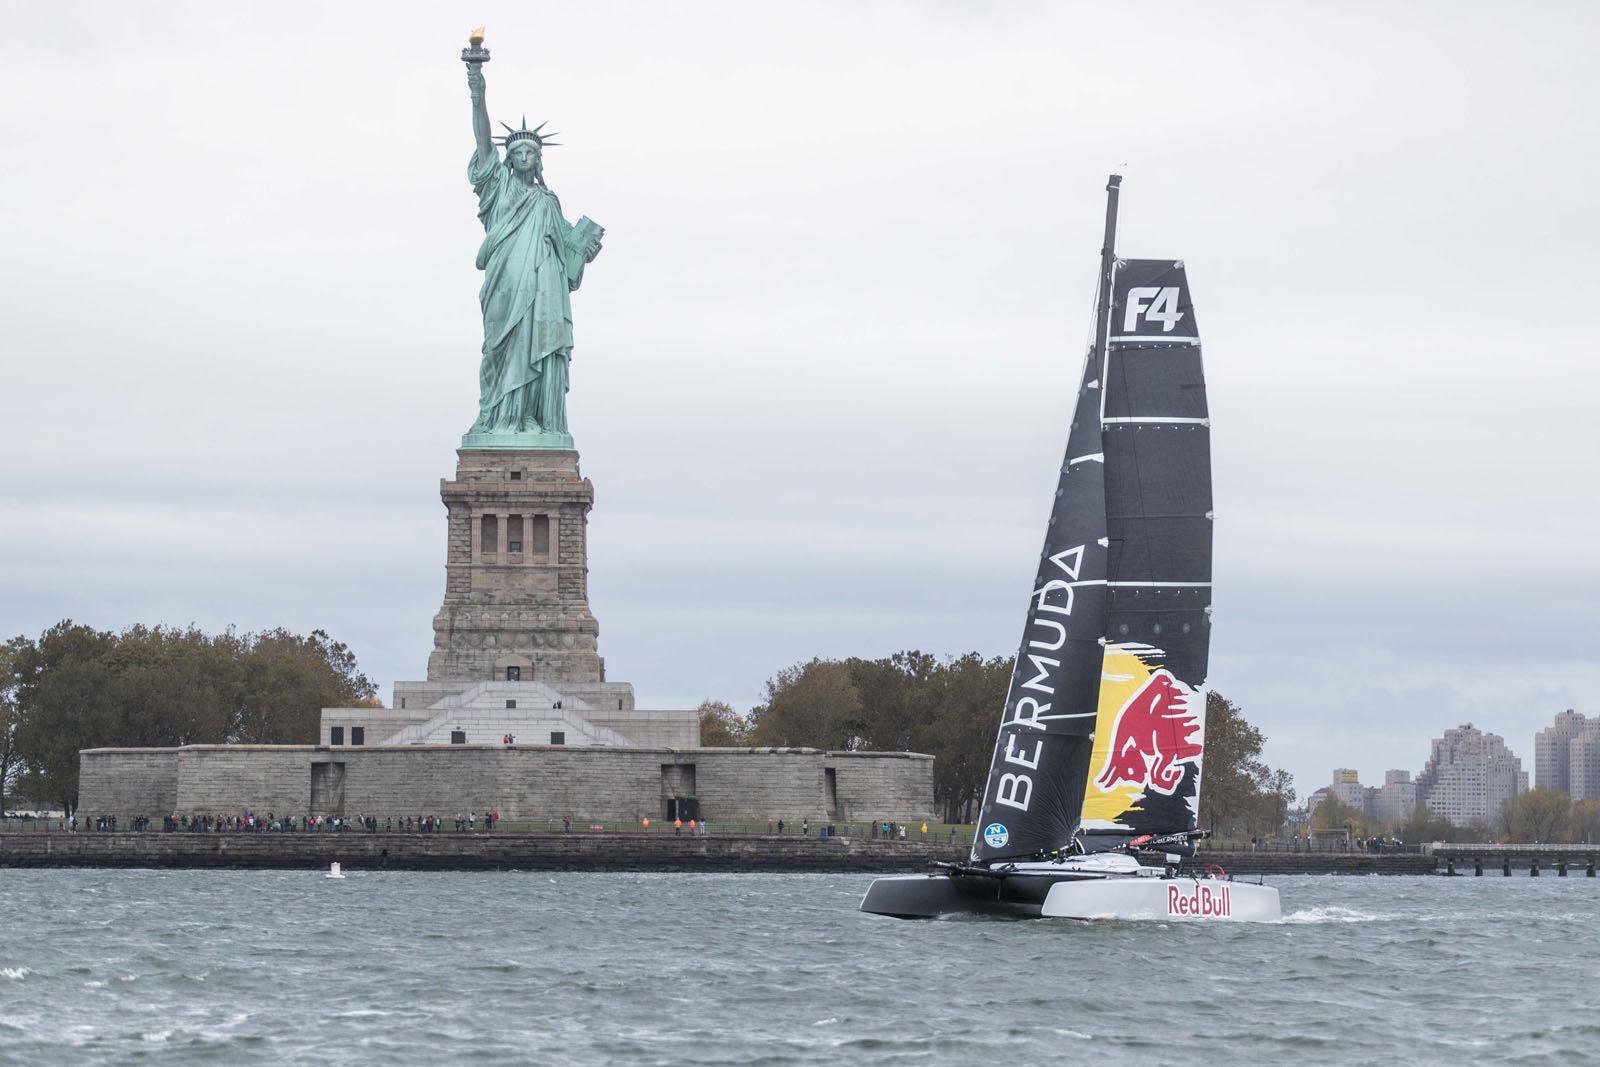 Red Bull Bluesmiths Sailing NYC Statue of Liberty Foiling Catamaran